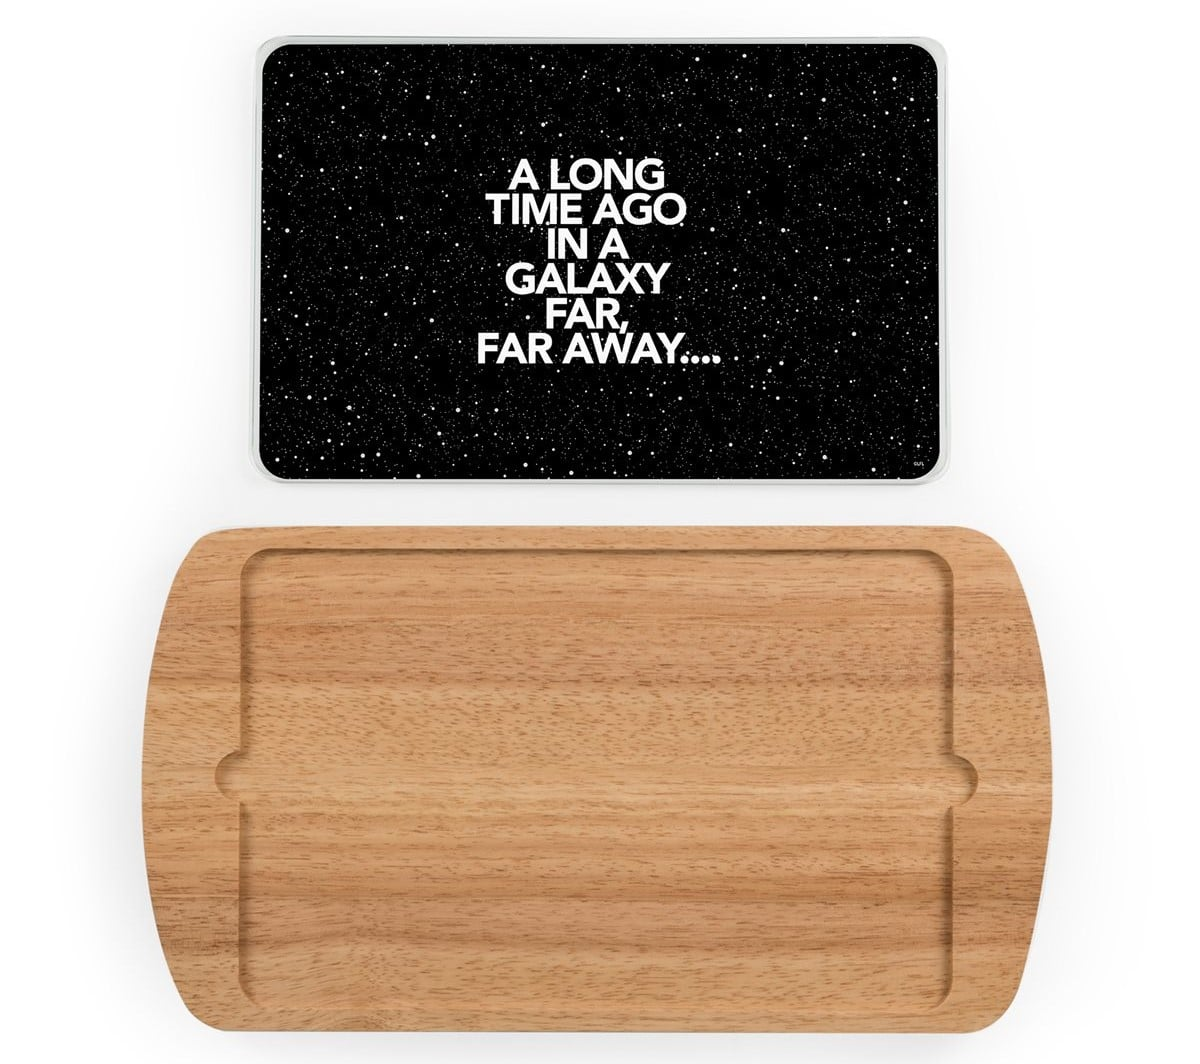 This serving tray will add a touch of Star Wars to your kitchen 14